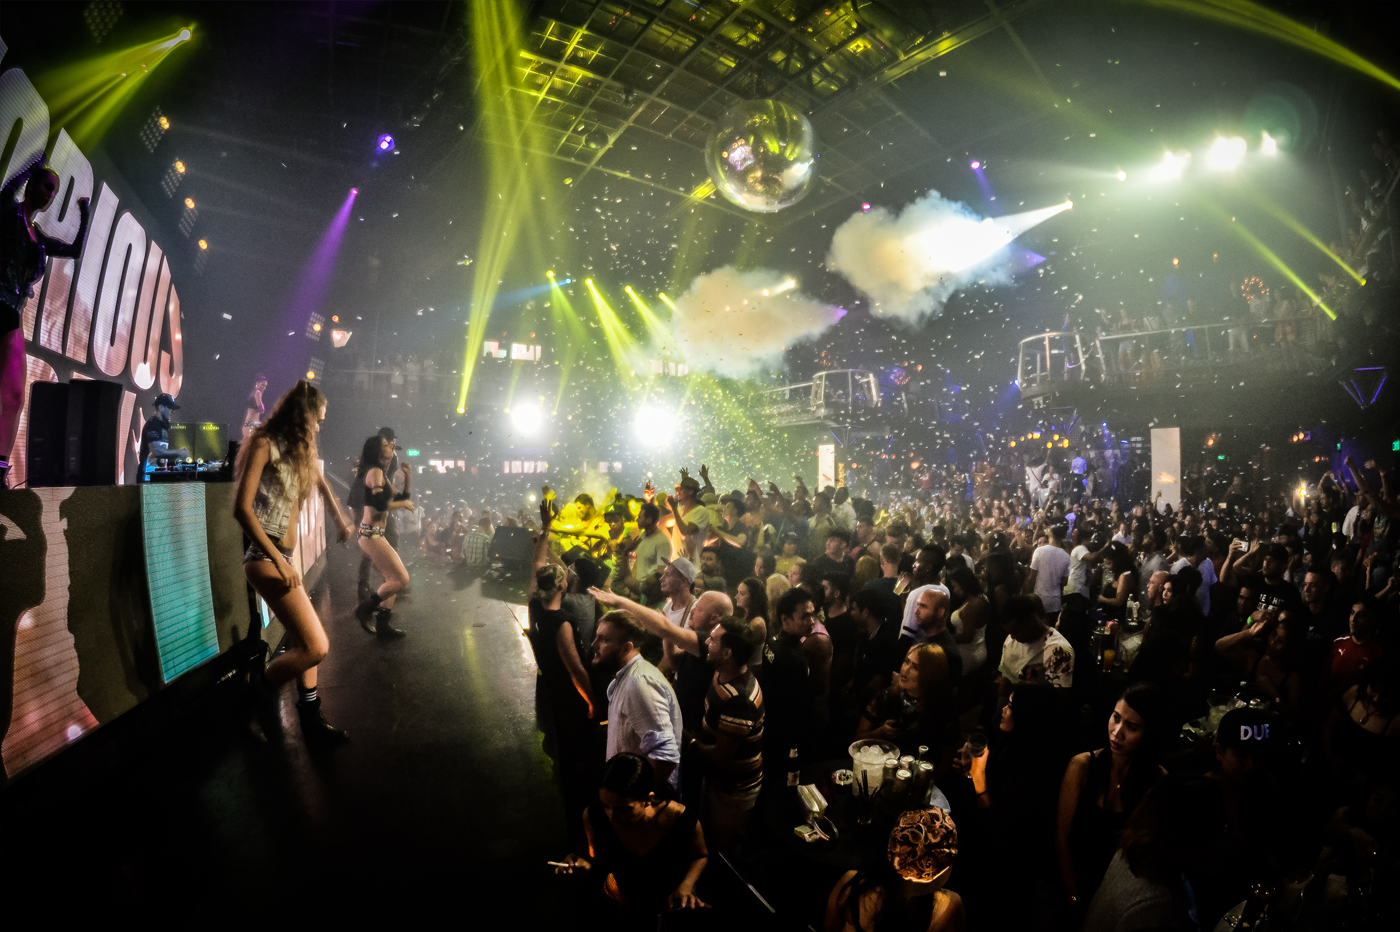 Illuzion Phuket Nightclub in Patong Beach